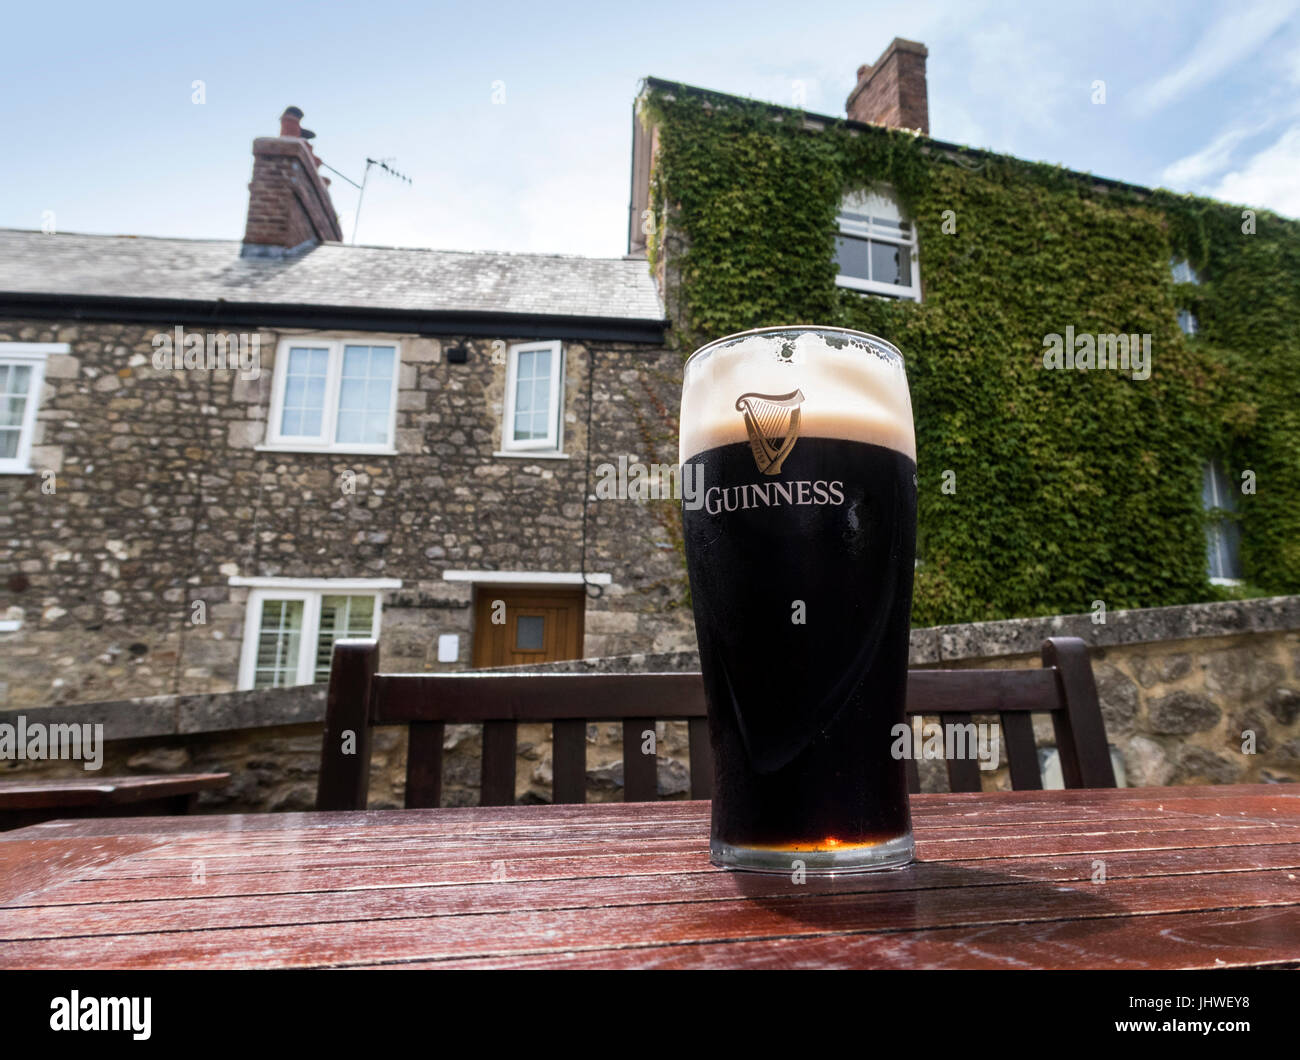 A pint of Guinness on a table outside a country pub. Stock Photo